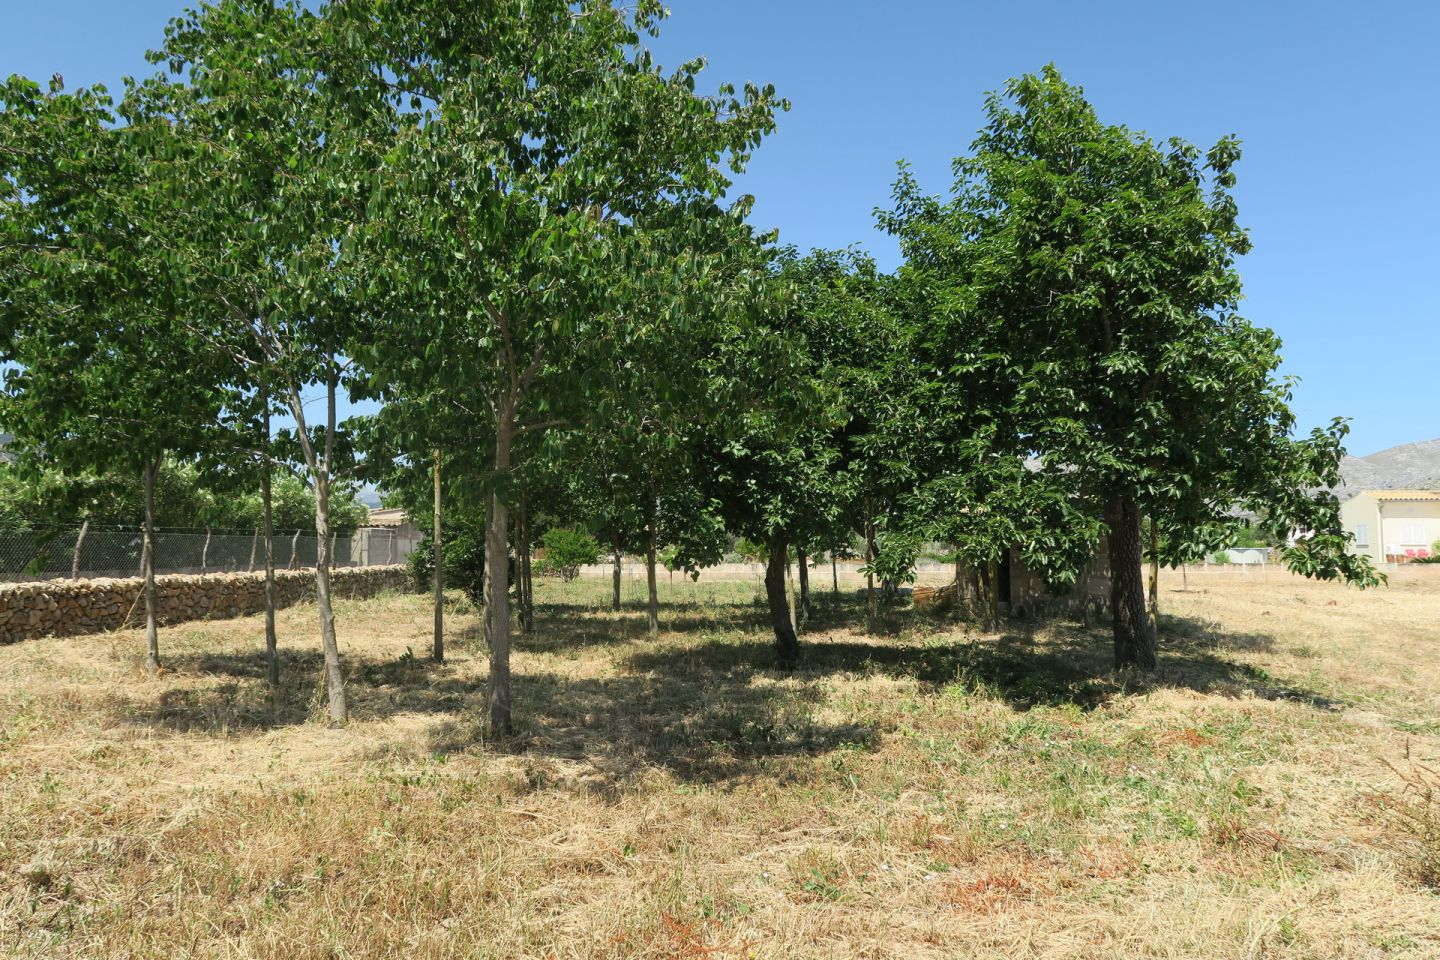 Countryside Land for sale in PUERTO POLLENSA 2